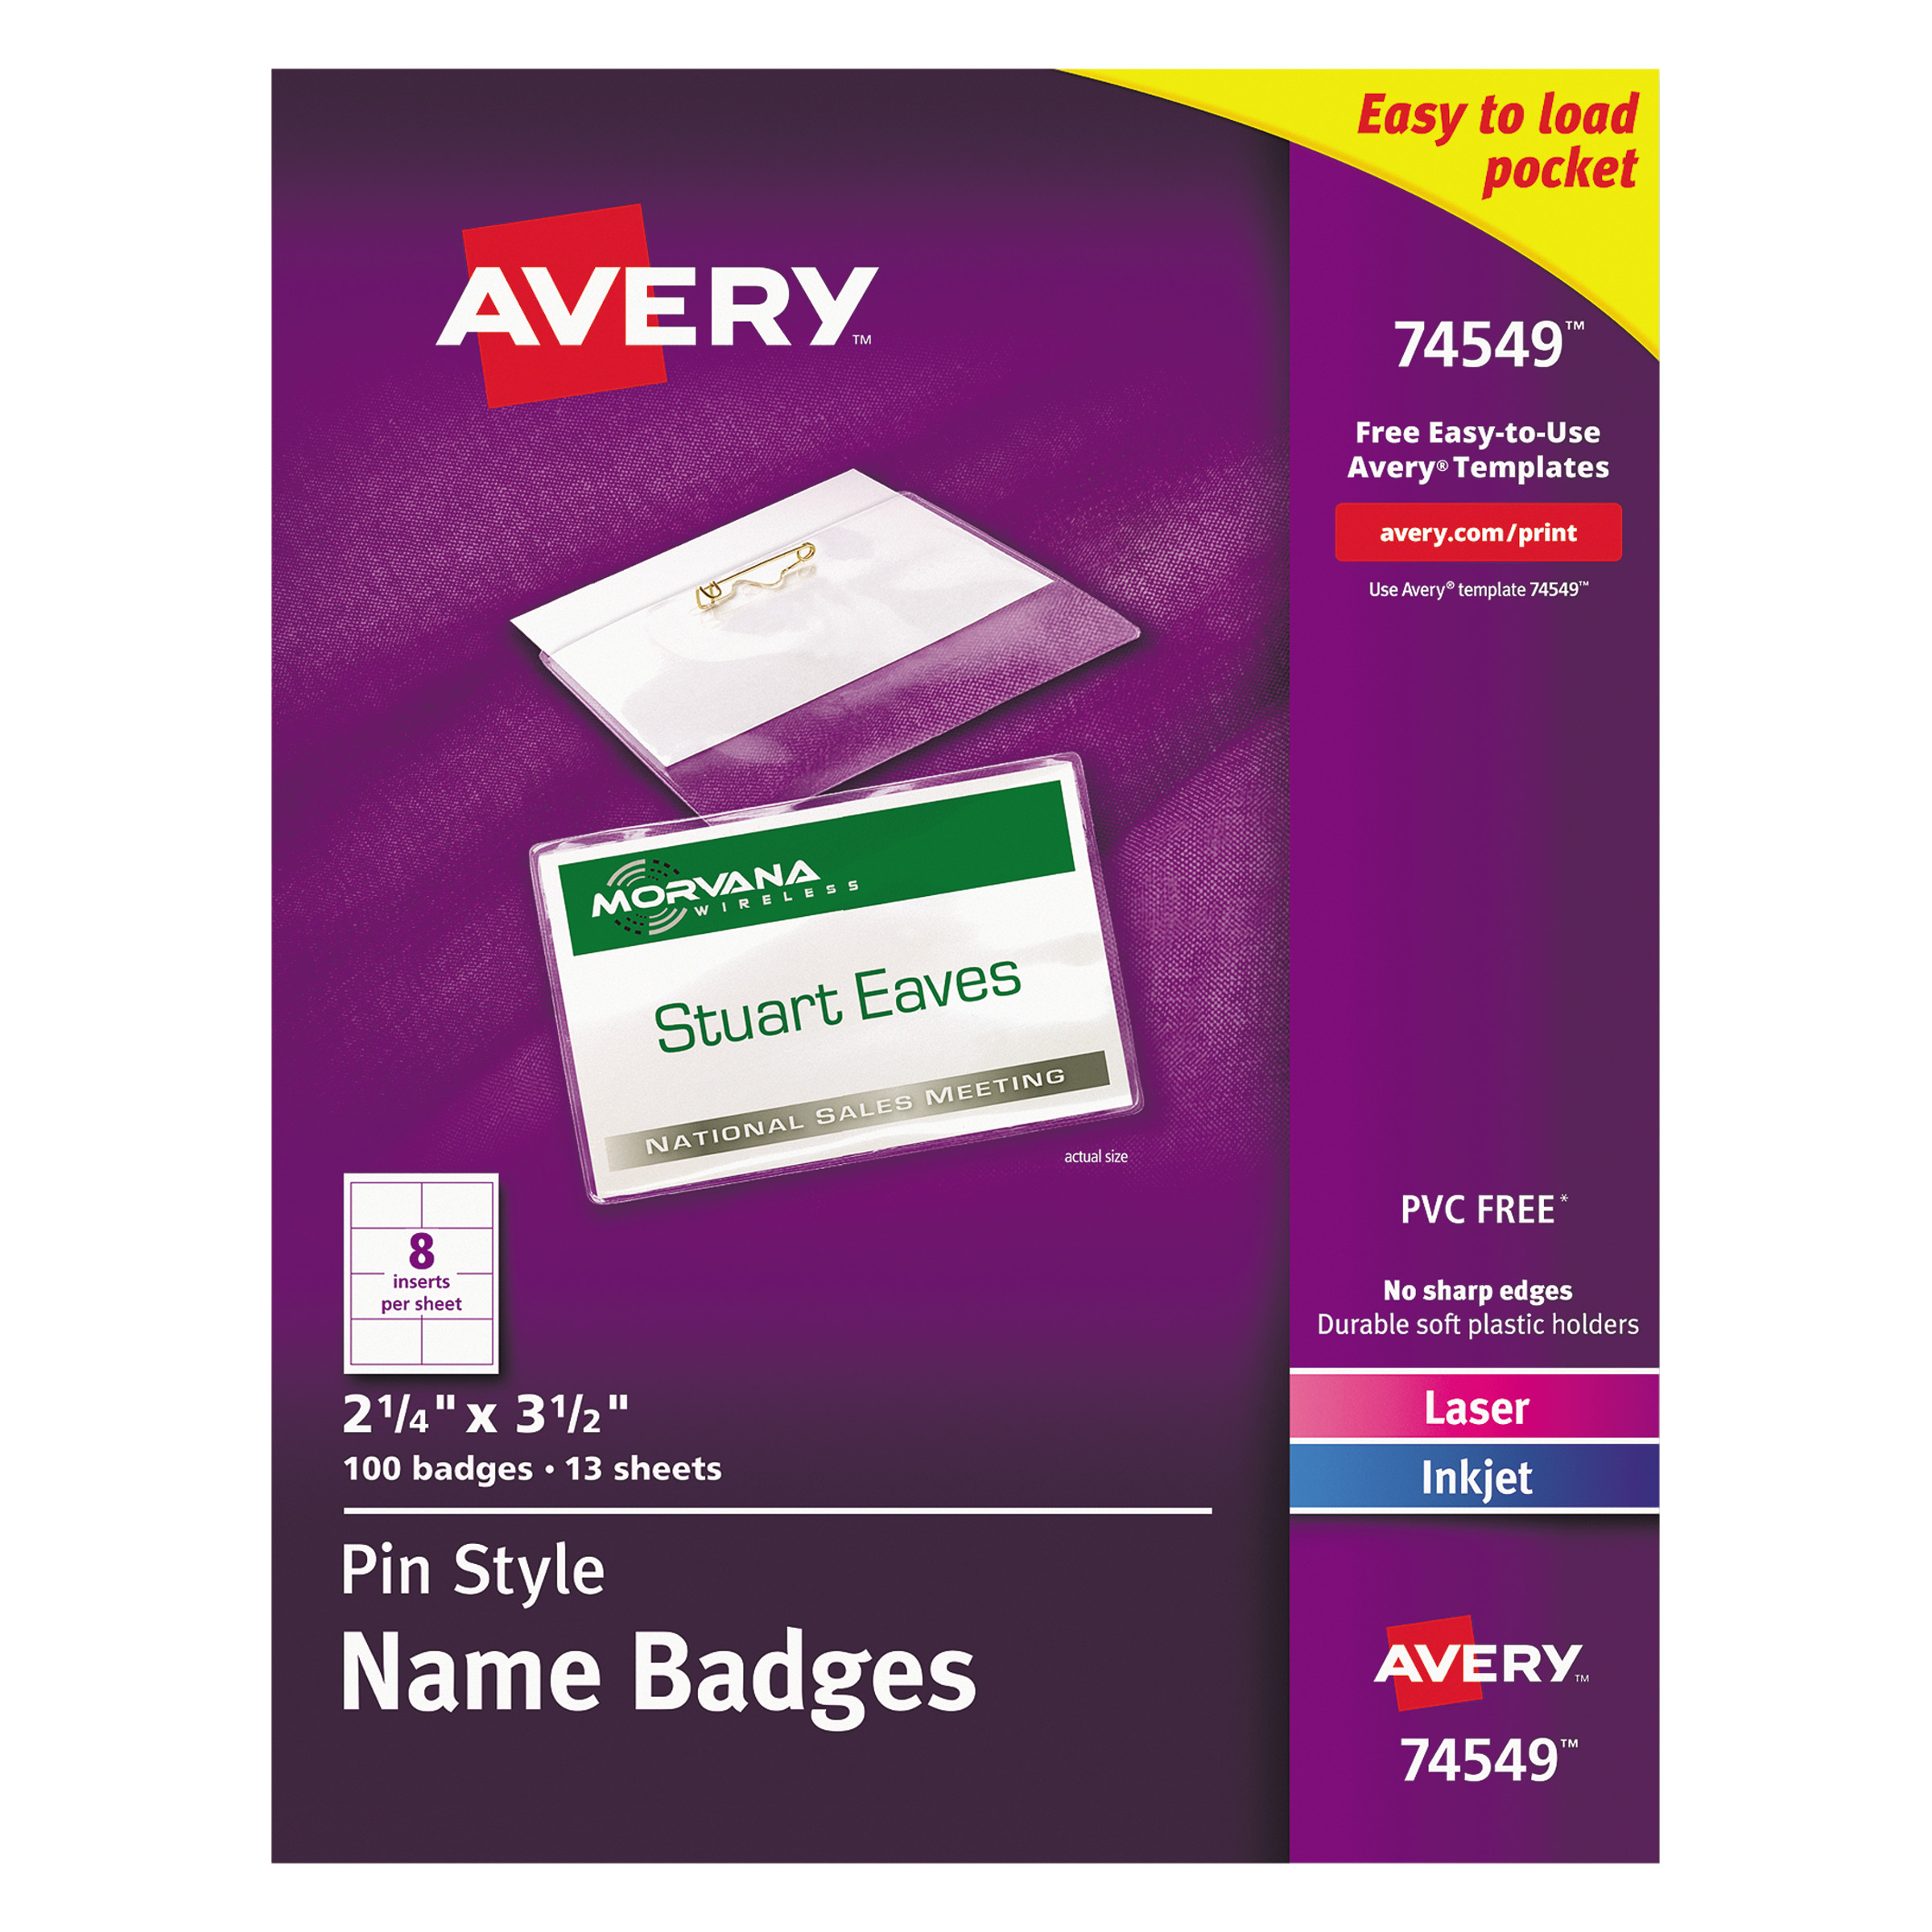 """Avery(R) Top-Loading Pin Style Name Badges 74549, 2-1/4"""" x 3-1/2"""", Box of 100"""